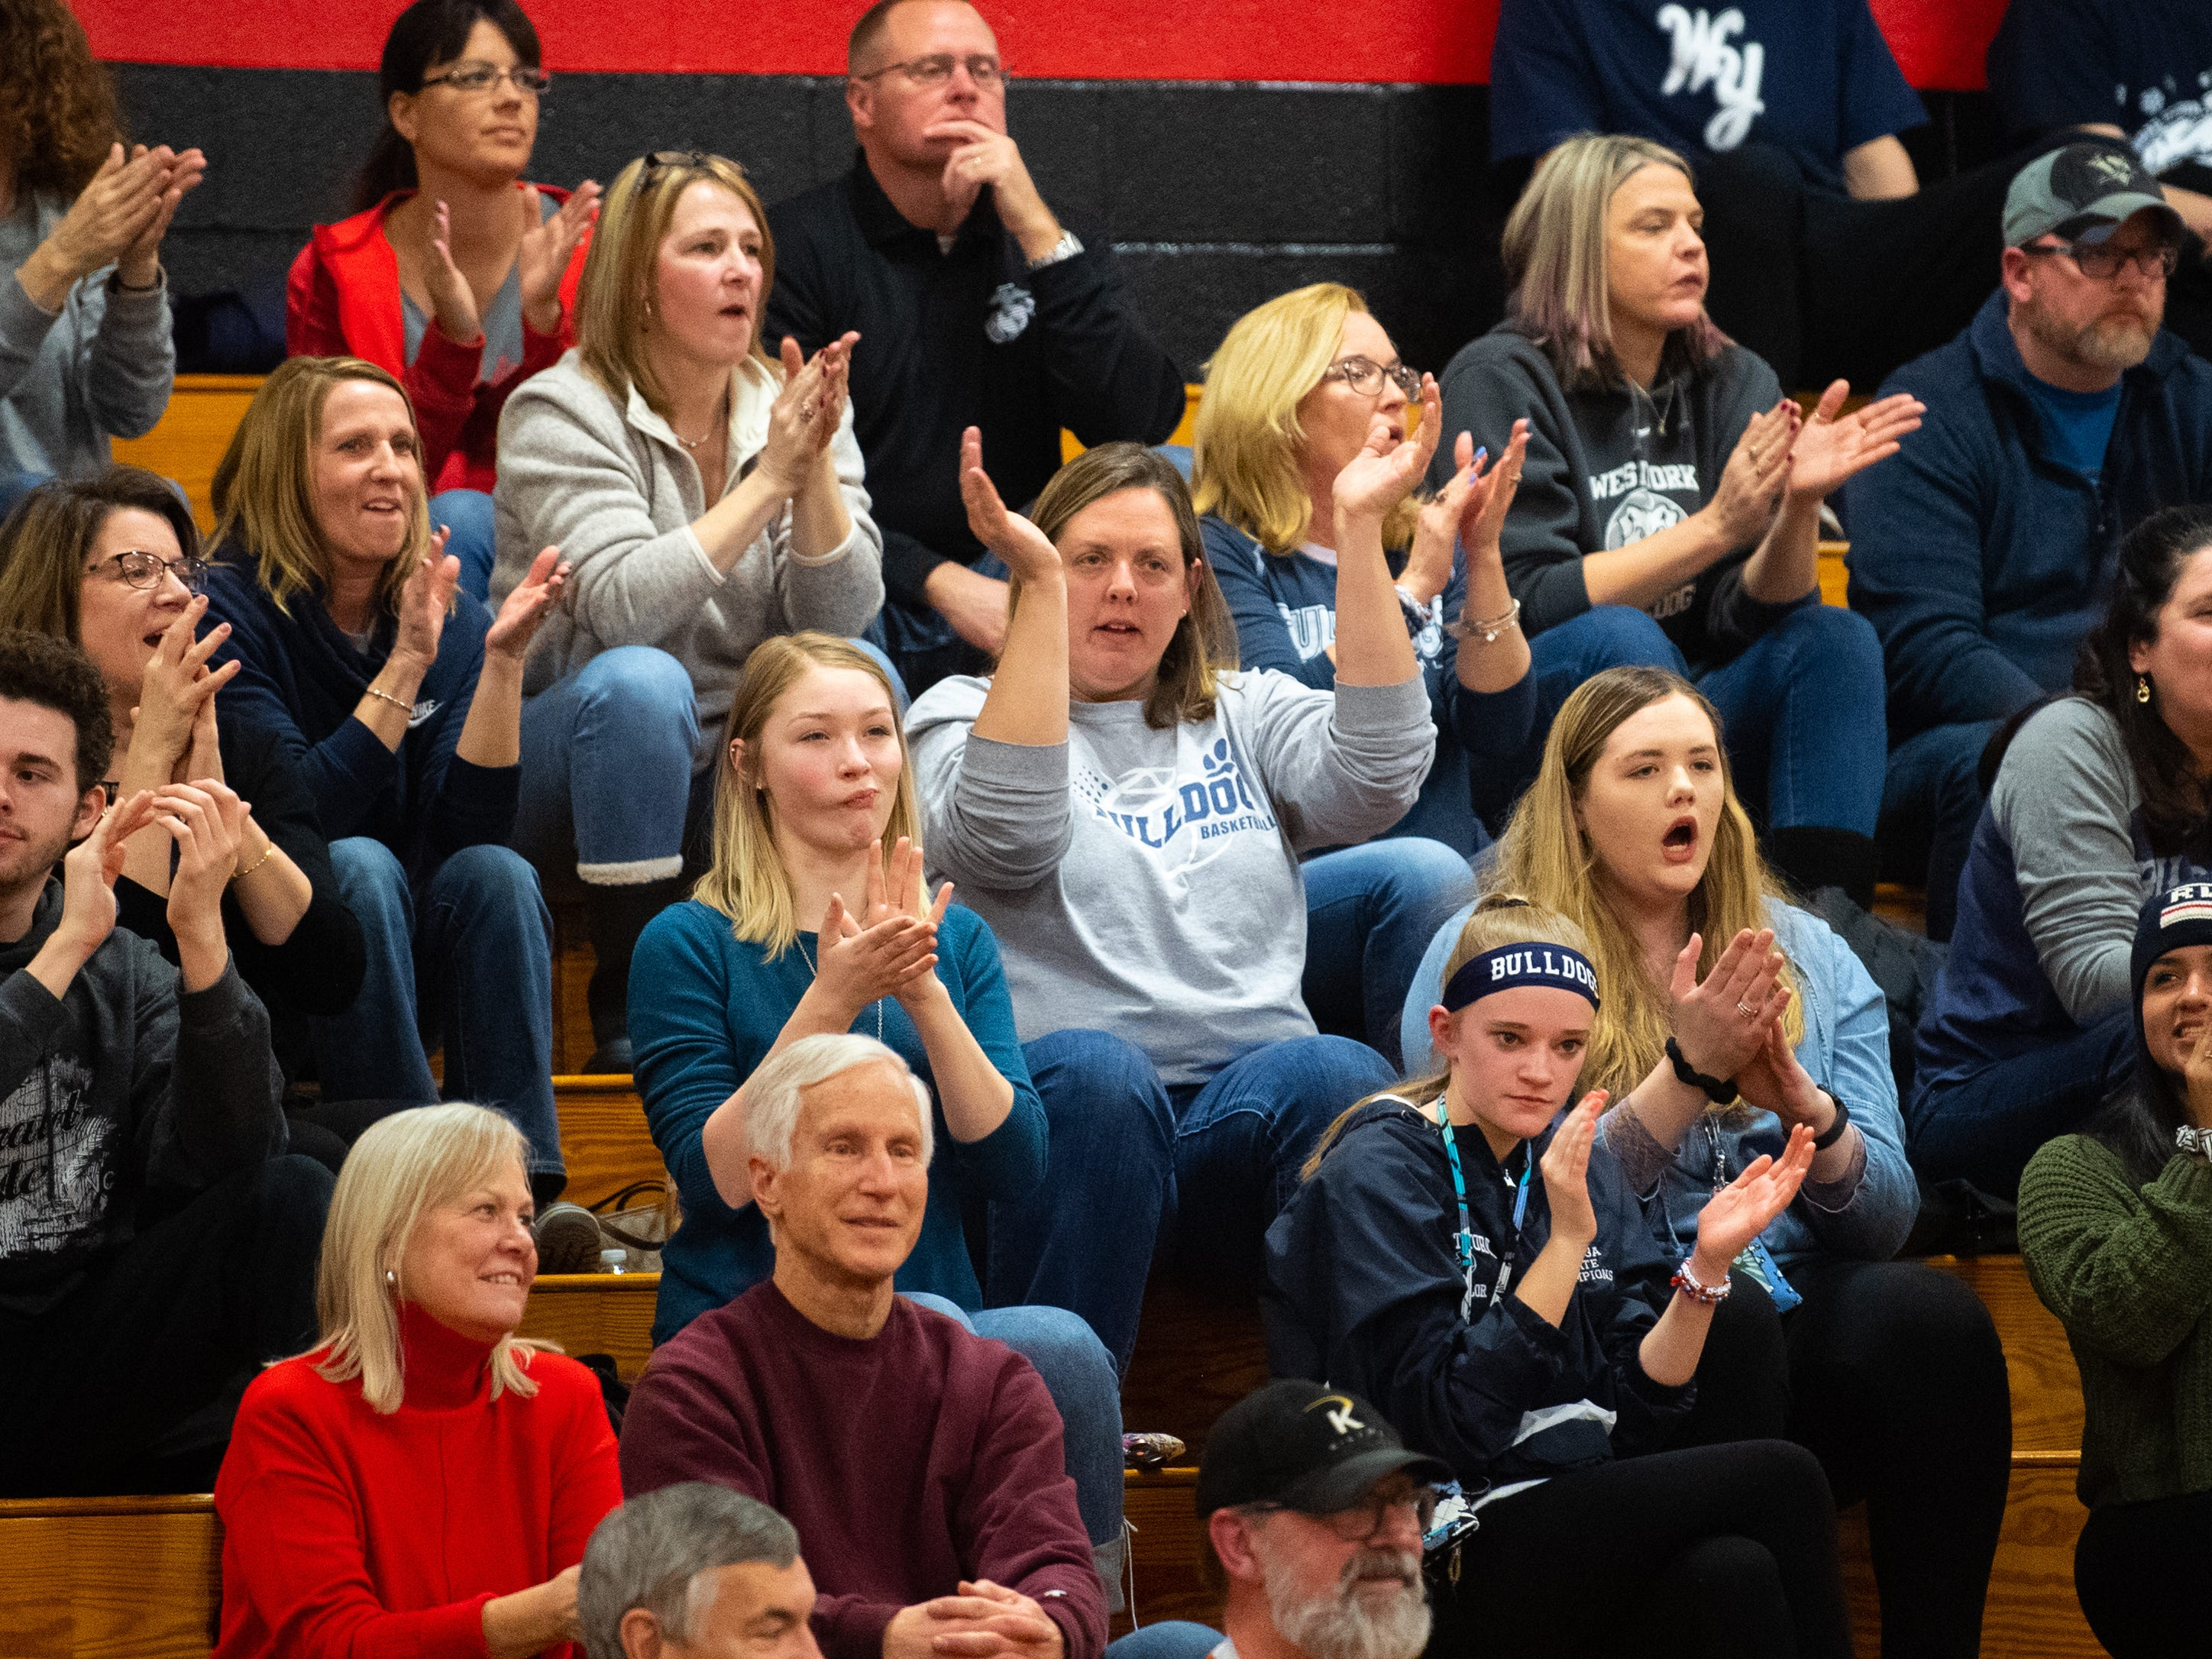 West York fans cheer on their team during the boys' basketball game between Dover and West York, February 1, 2019 at Dover Area High School. The Eagles defeated the Bulldogs 65 to 58.